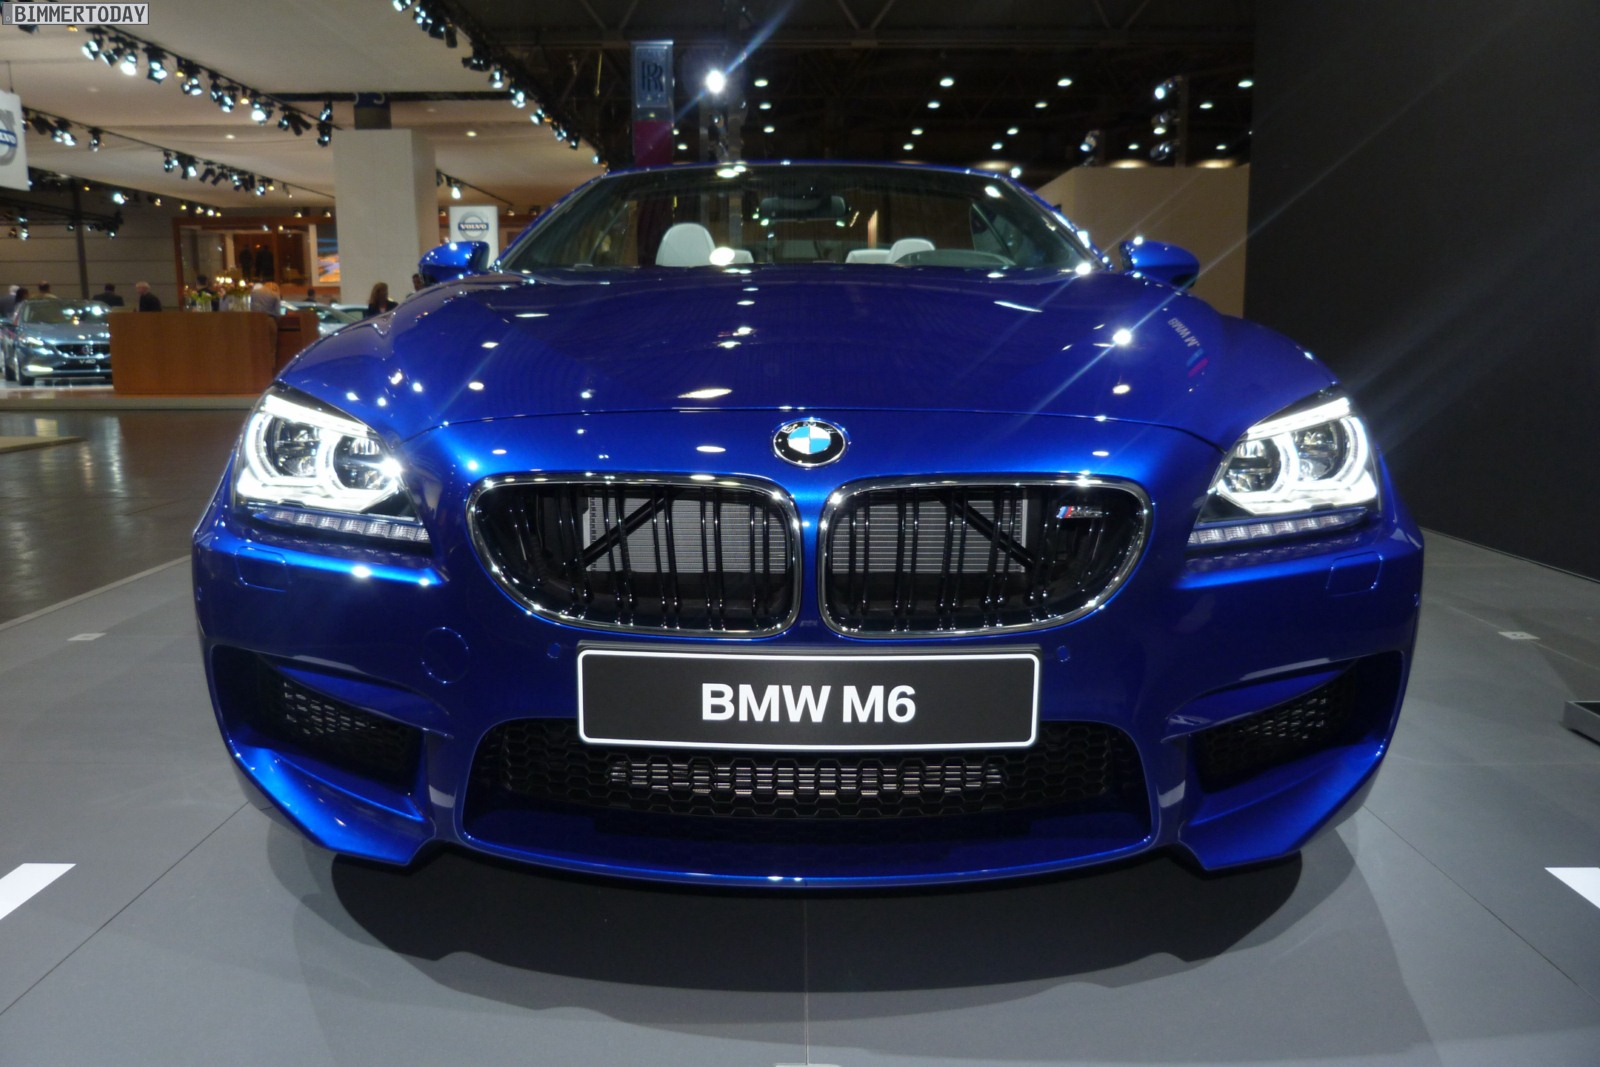 2012 Leipzig Auto Show Bmw M6 Convertible In San Marino Blue